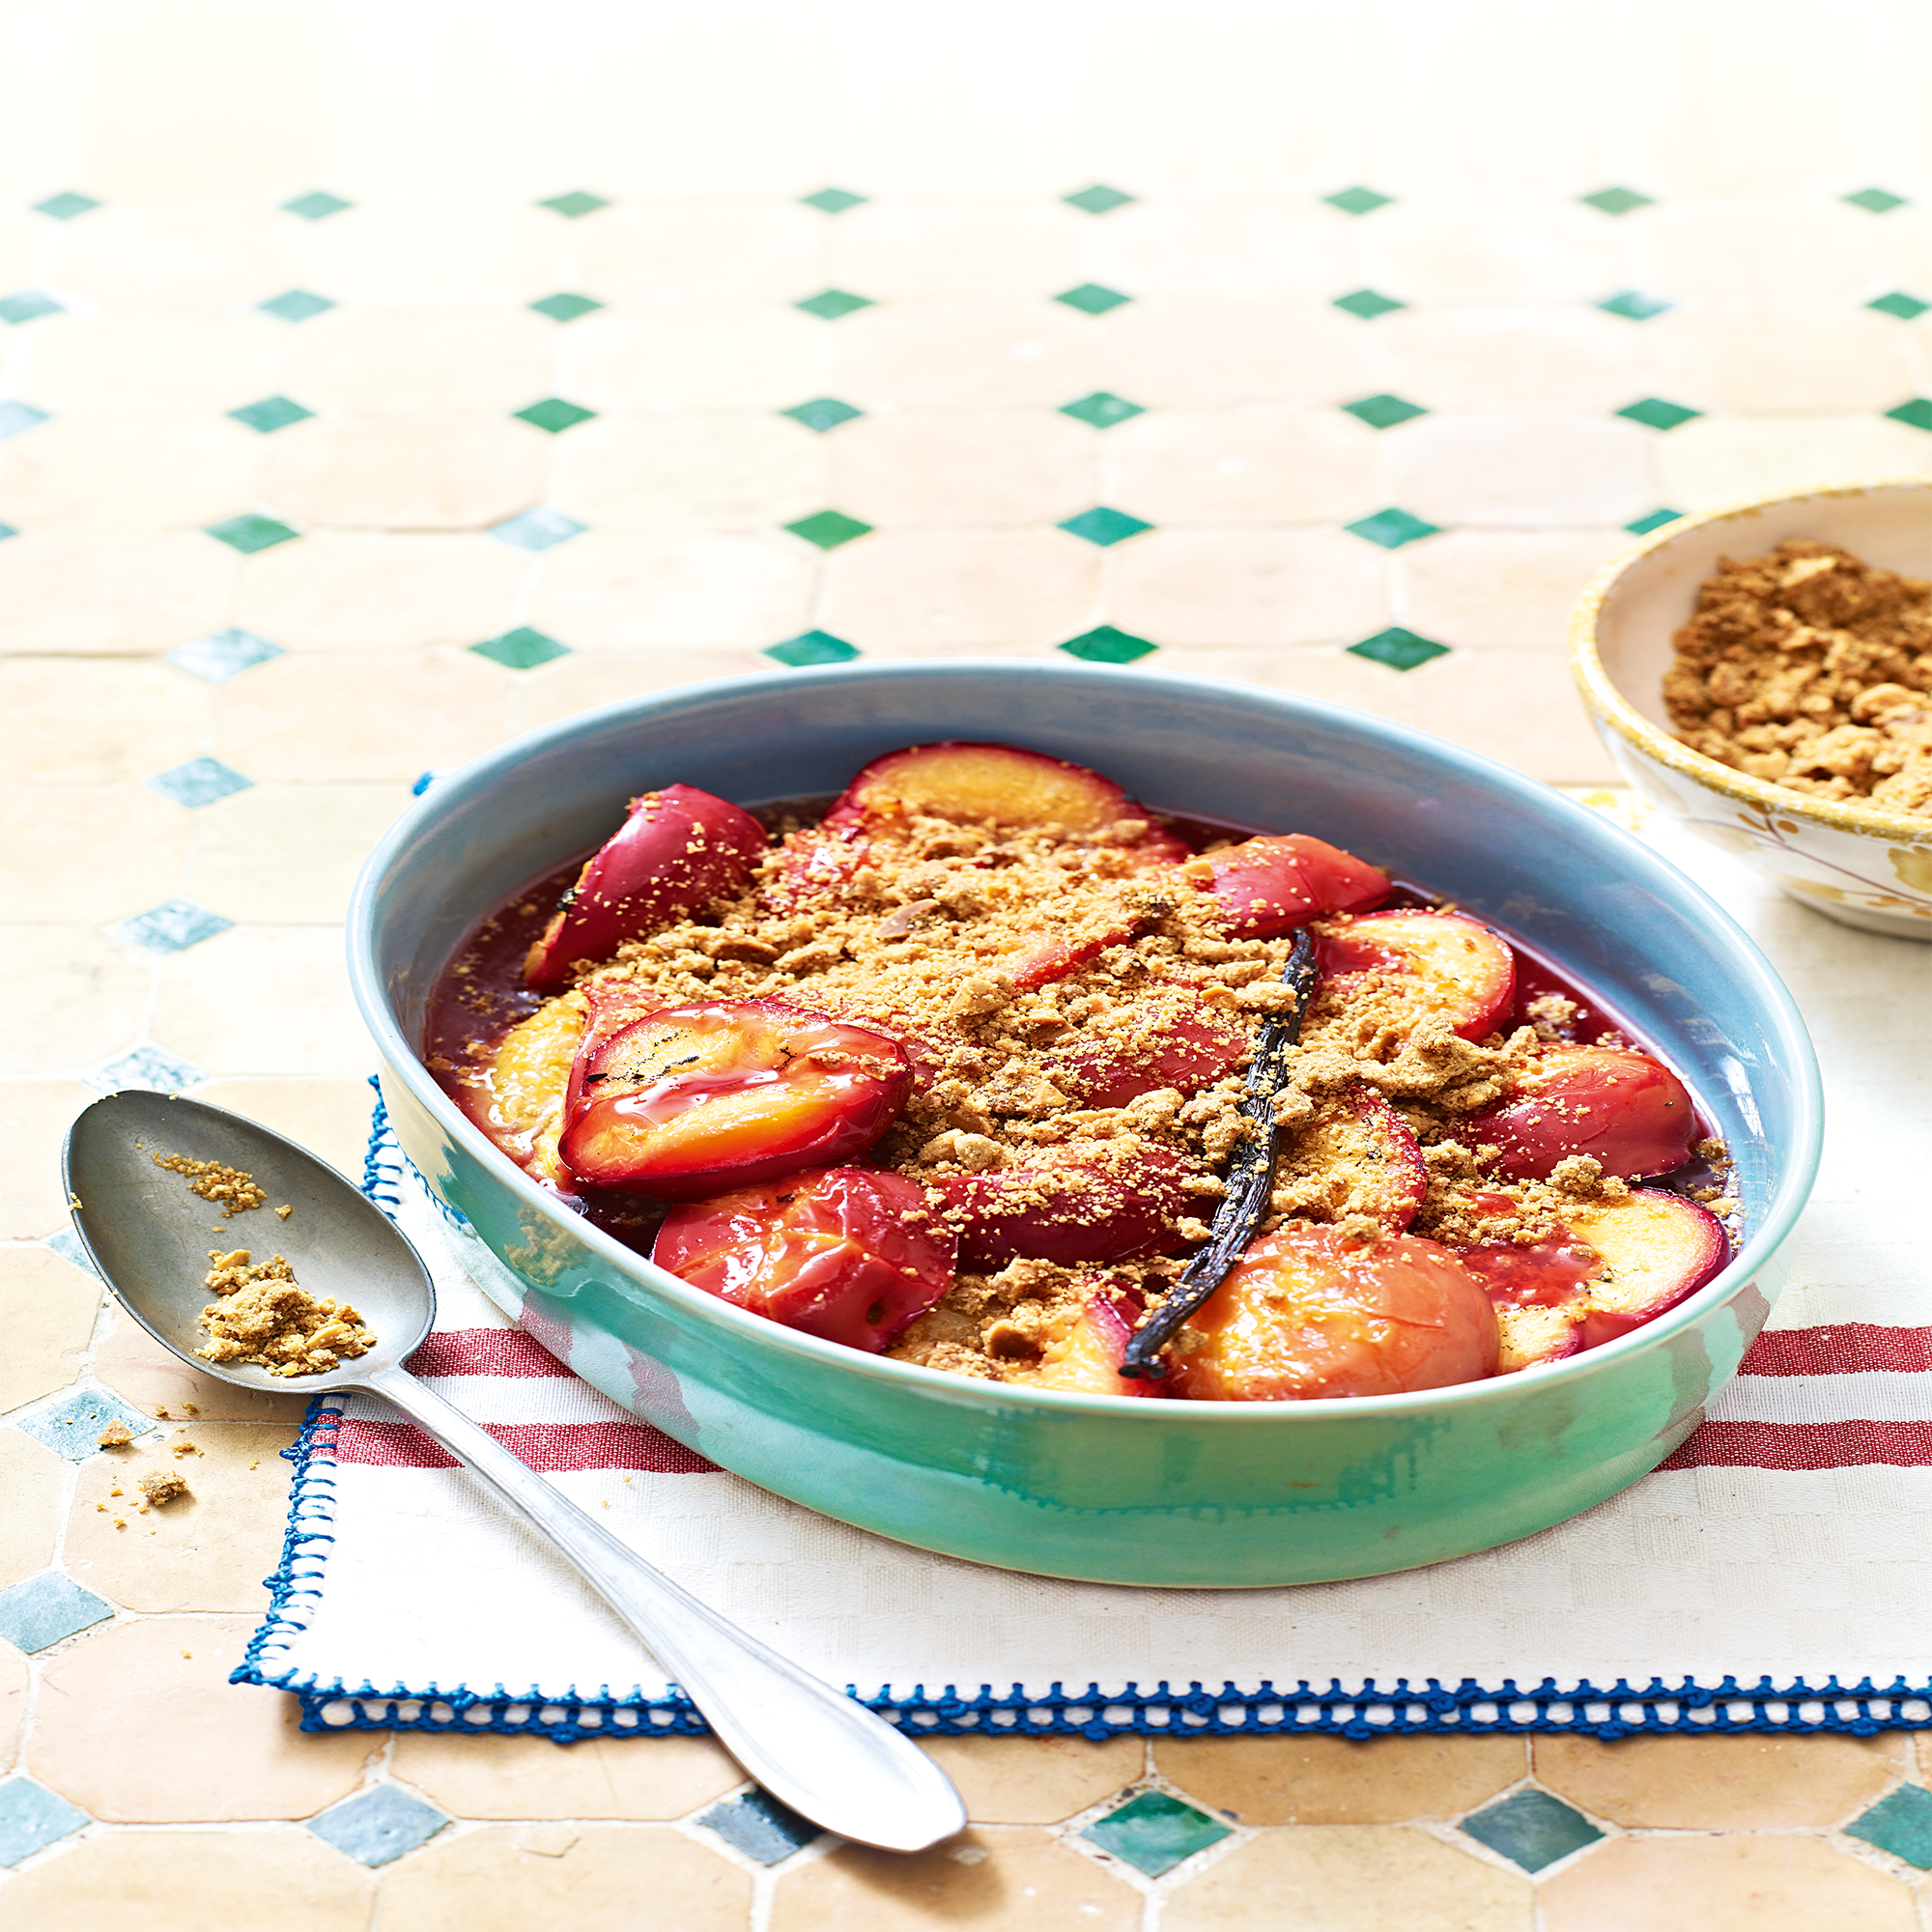 Baked Plums with a Crunchy Crumble Topping Recipe